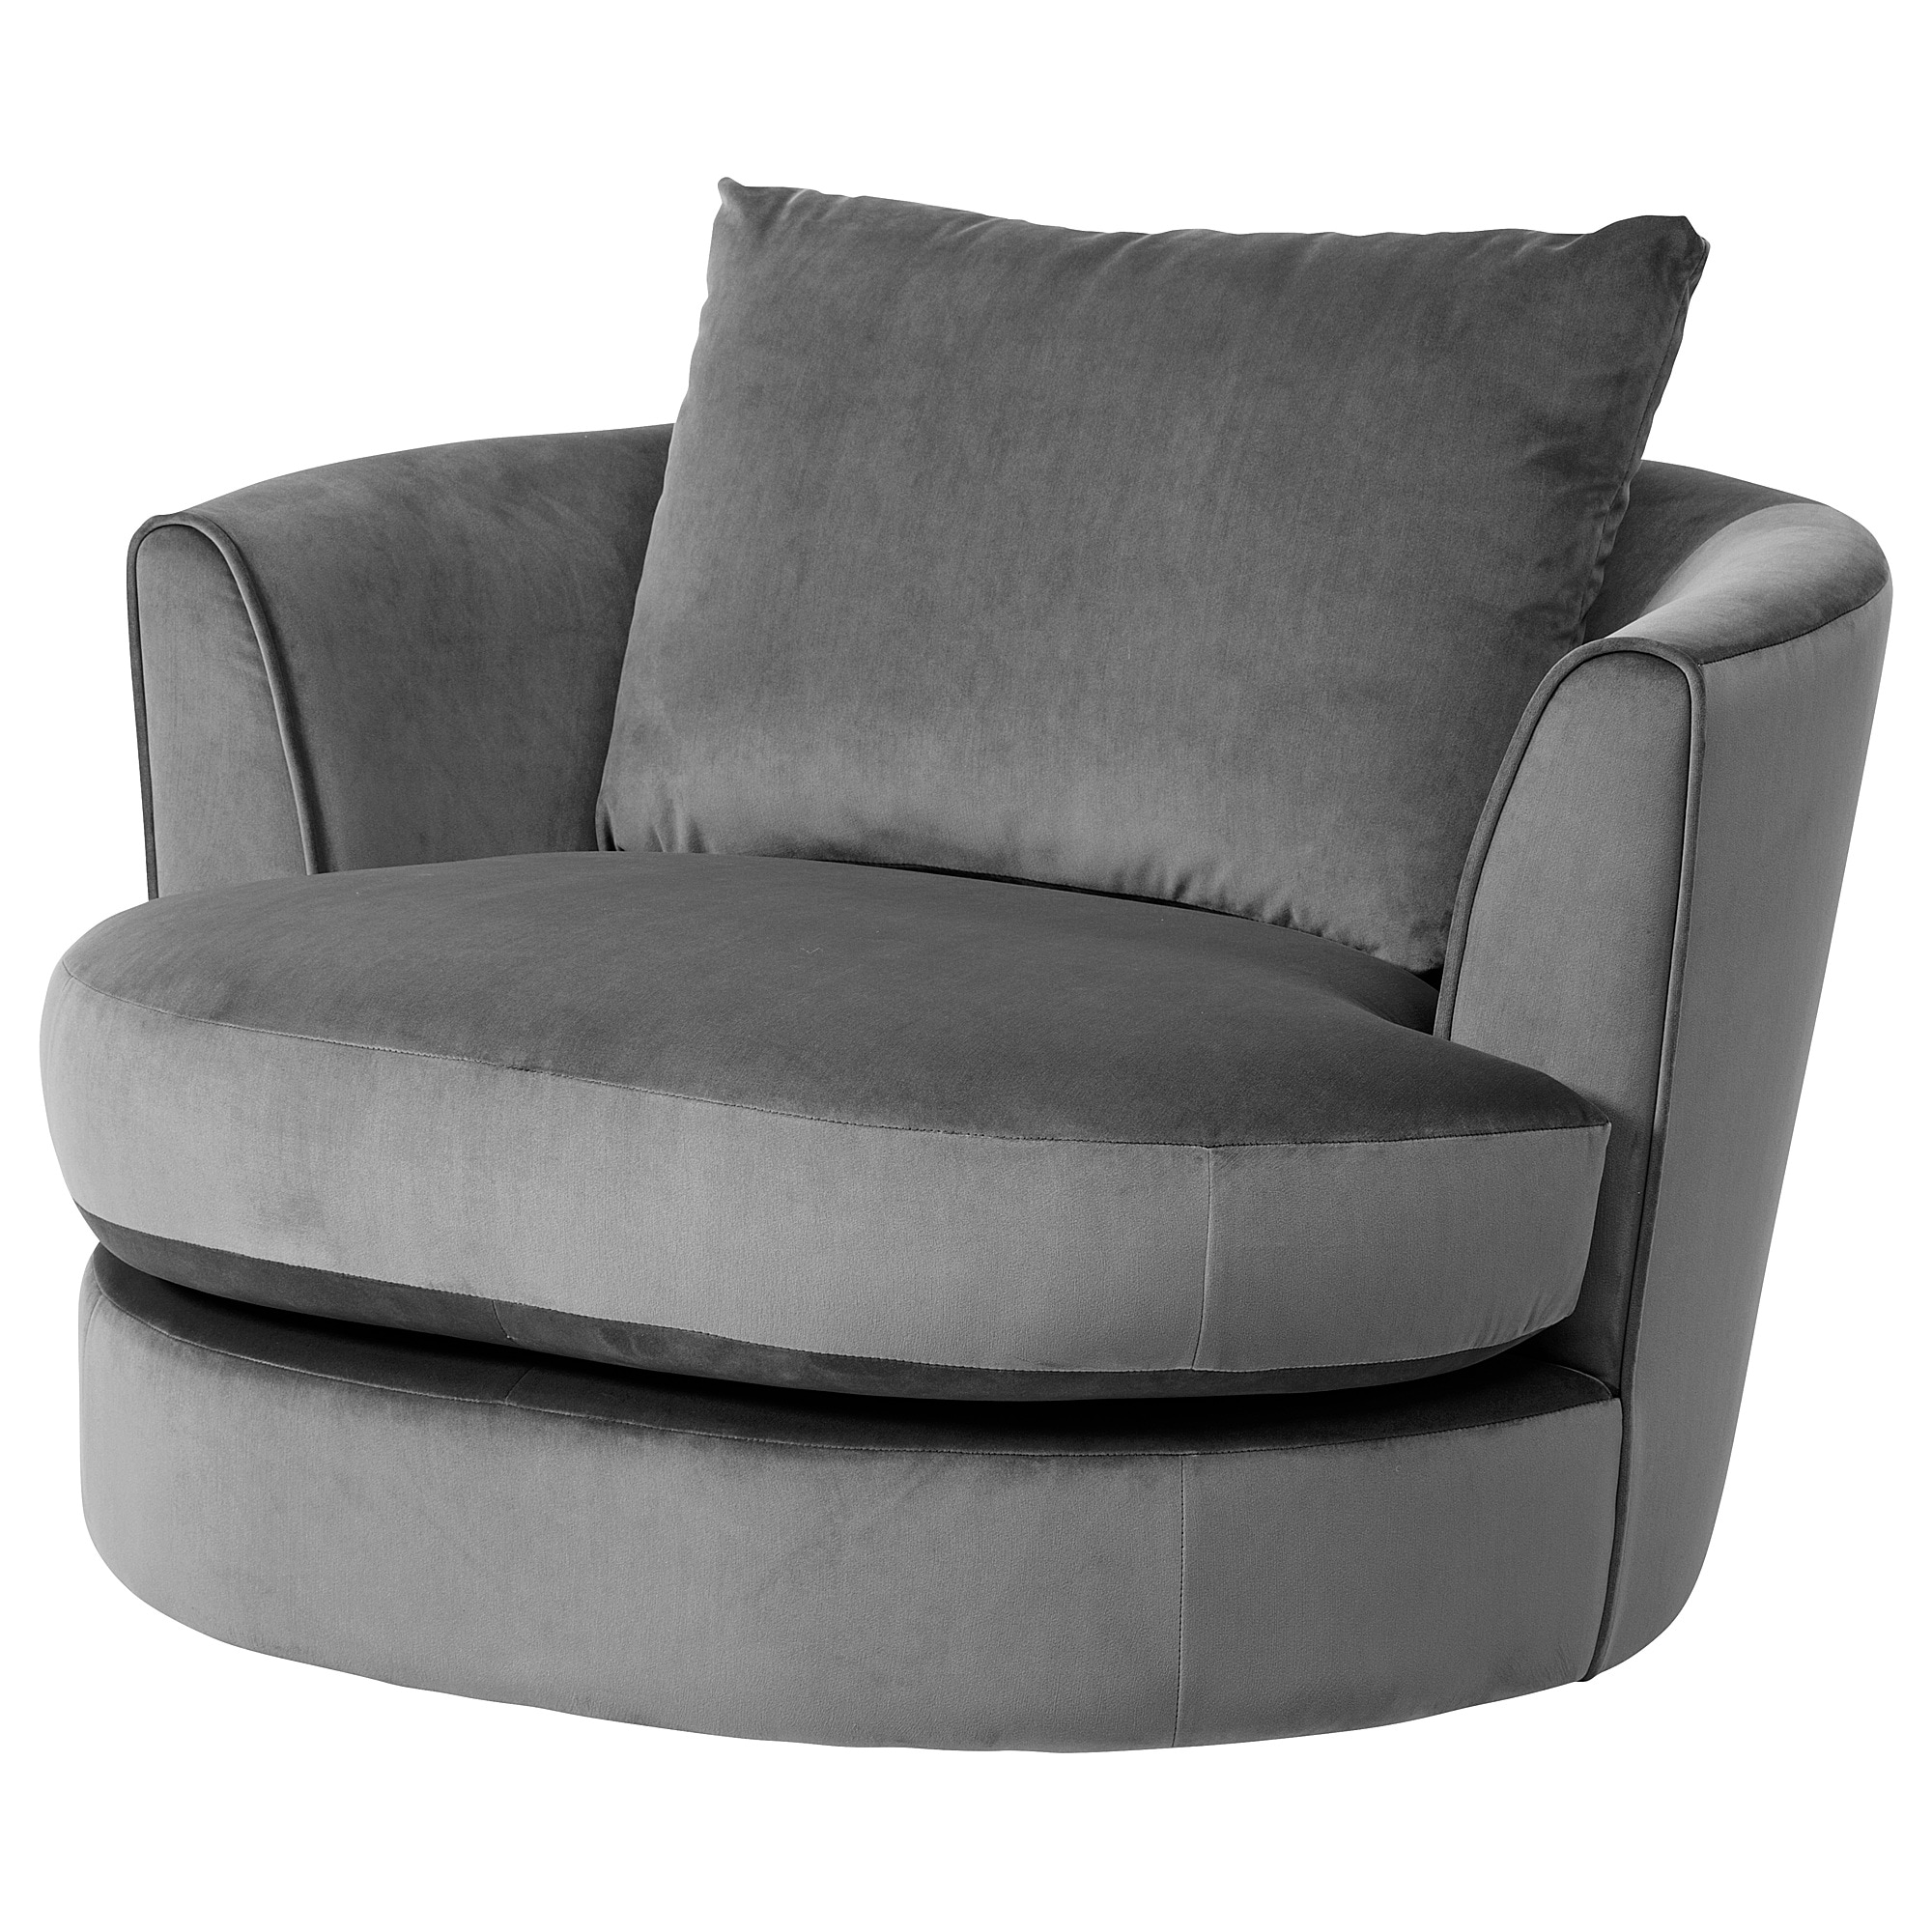 FASALT Swivel armchair - velvet grey - IKEA